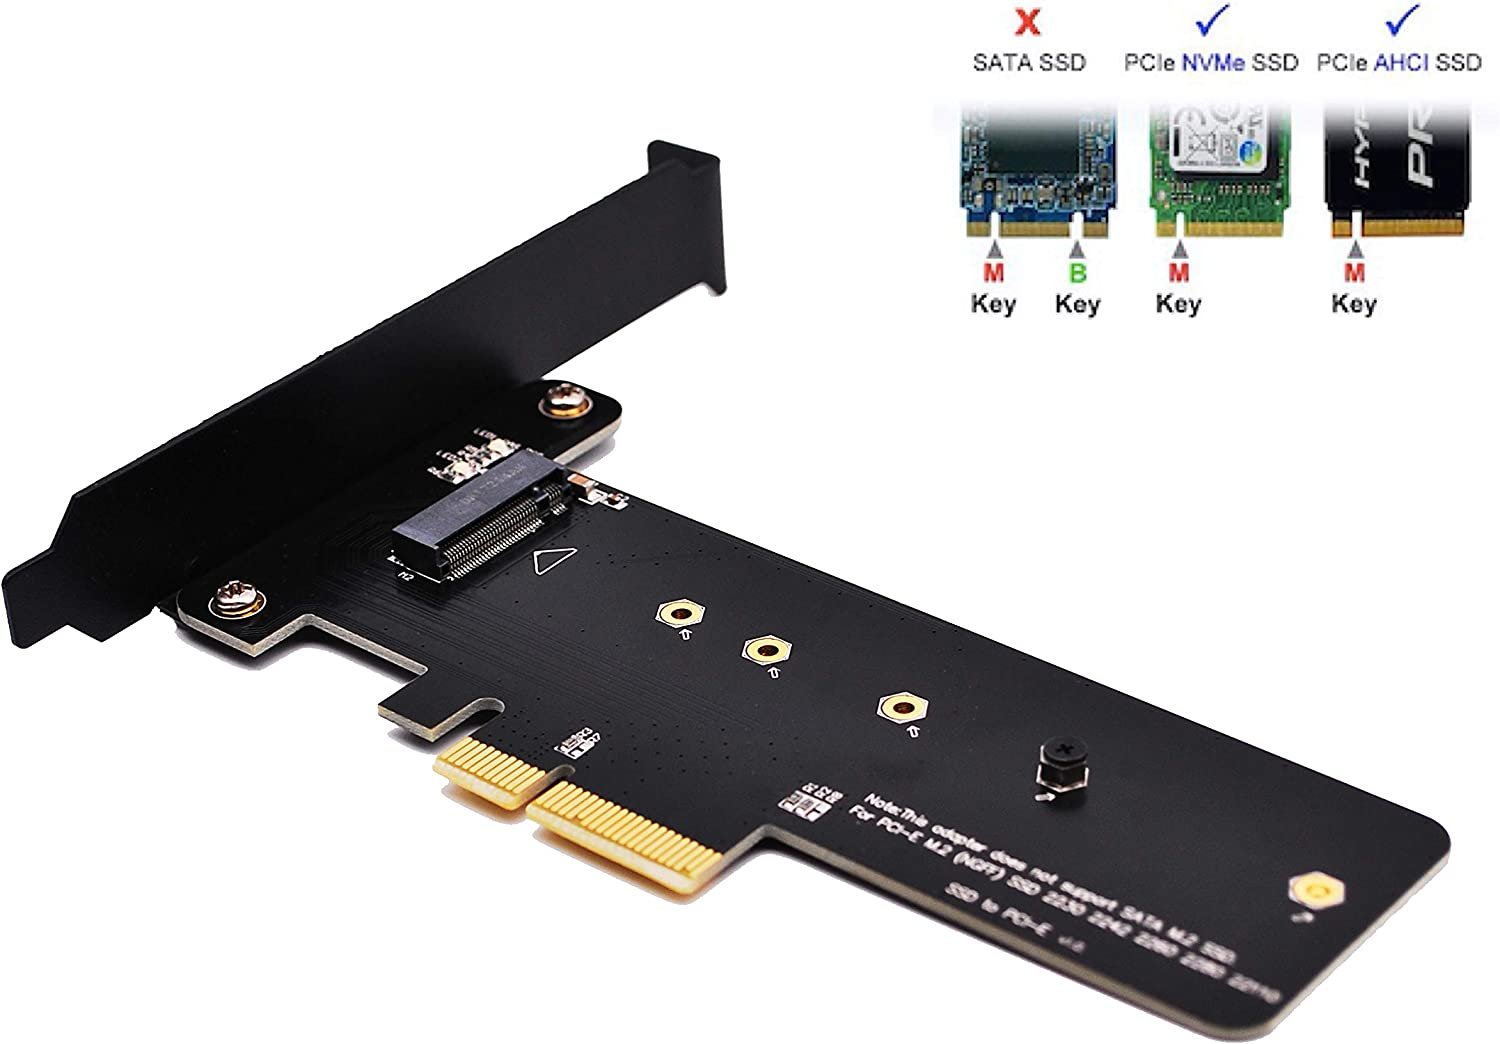 EZDIY-FAB PCI Express M.2 SSD NGFF PCIe Card to PCIe 3.0 x4 M2 Adapter (Support M.2 PCIe 22110,2280, 2260, 2242)